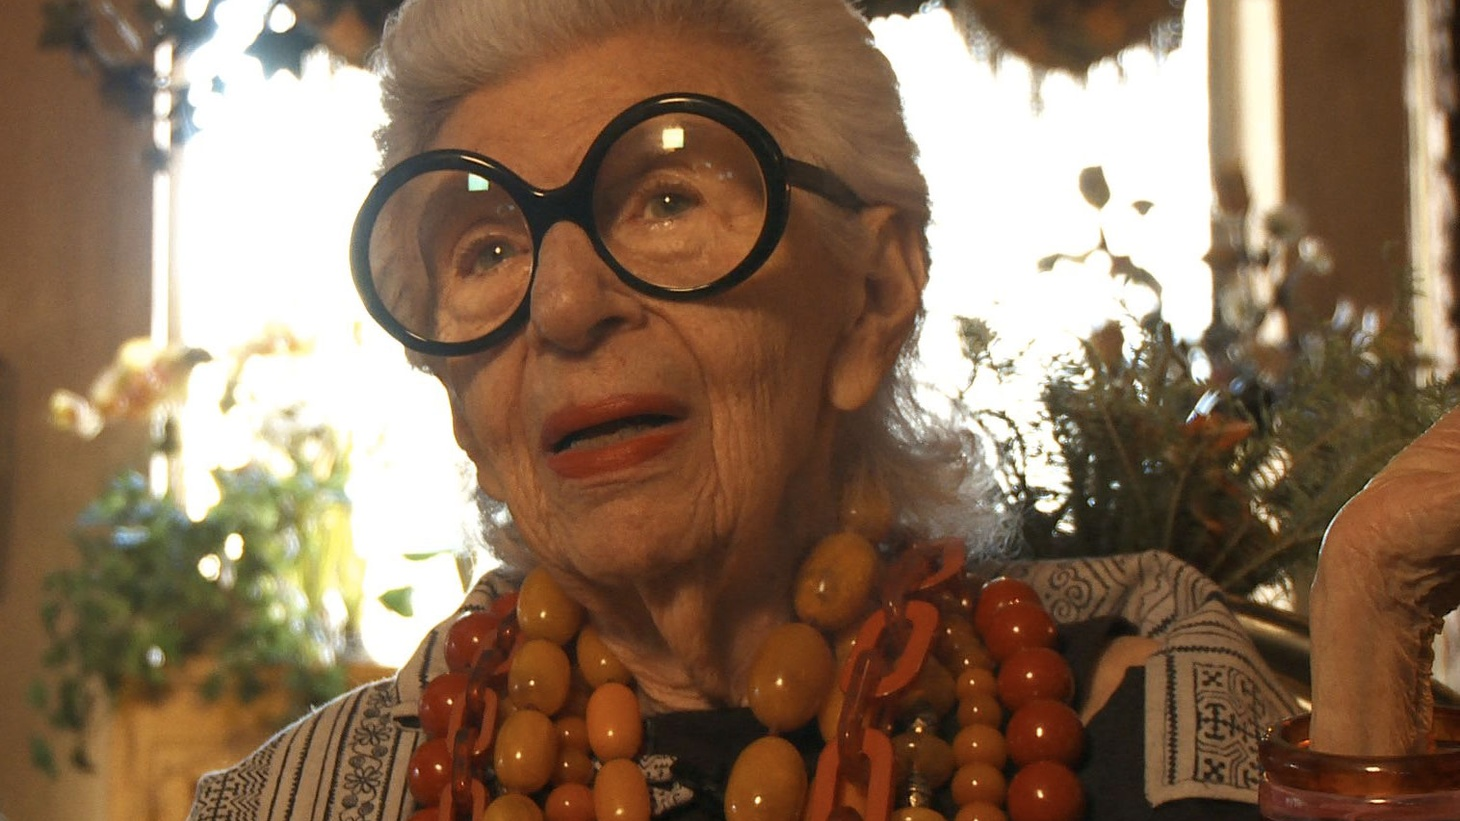 "The new documentary Iris paints a portrait of 93-year-old fashion maven Iris Apfel. It's a film about an icon, made by another icon, Albert Maysles. It's also one of his last films; Maysles died on March 5th at the age of 88. Albert and his brother David, who died in 1987, were documentary legends known for their ""fly on the wall"" style."